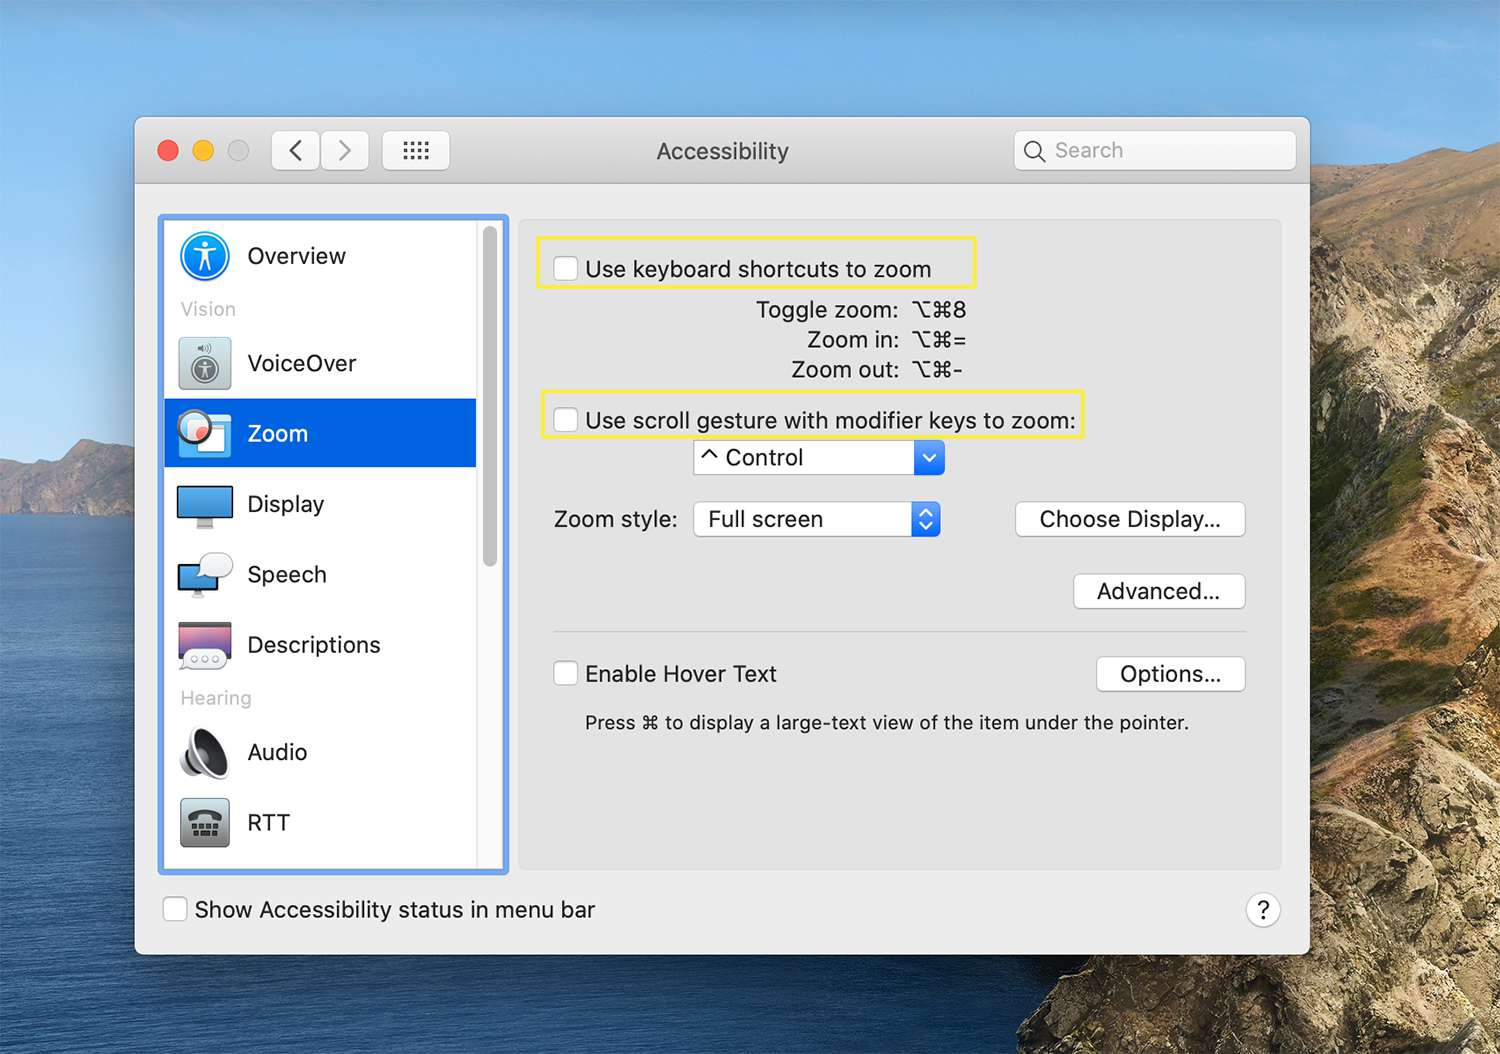 Keyboard and scroll gesture settings for the Zoom tool on macOs